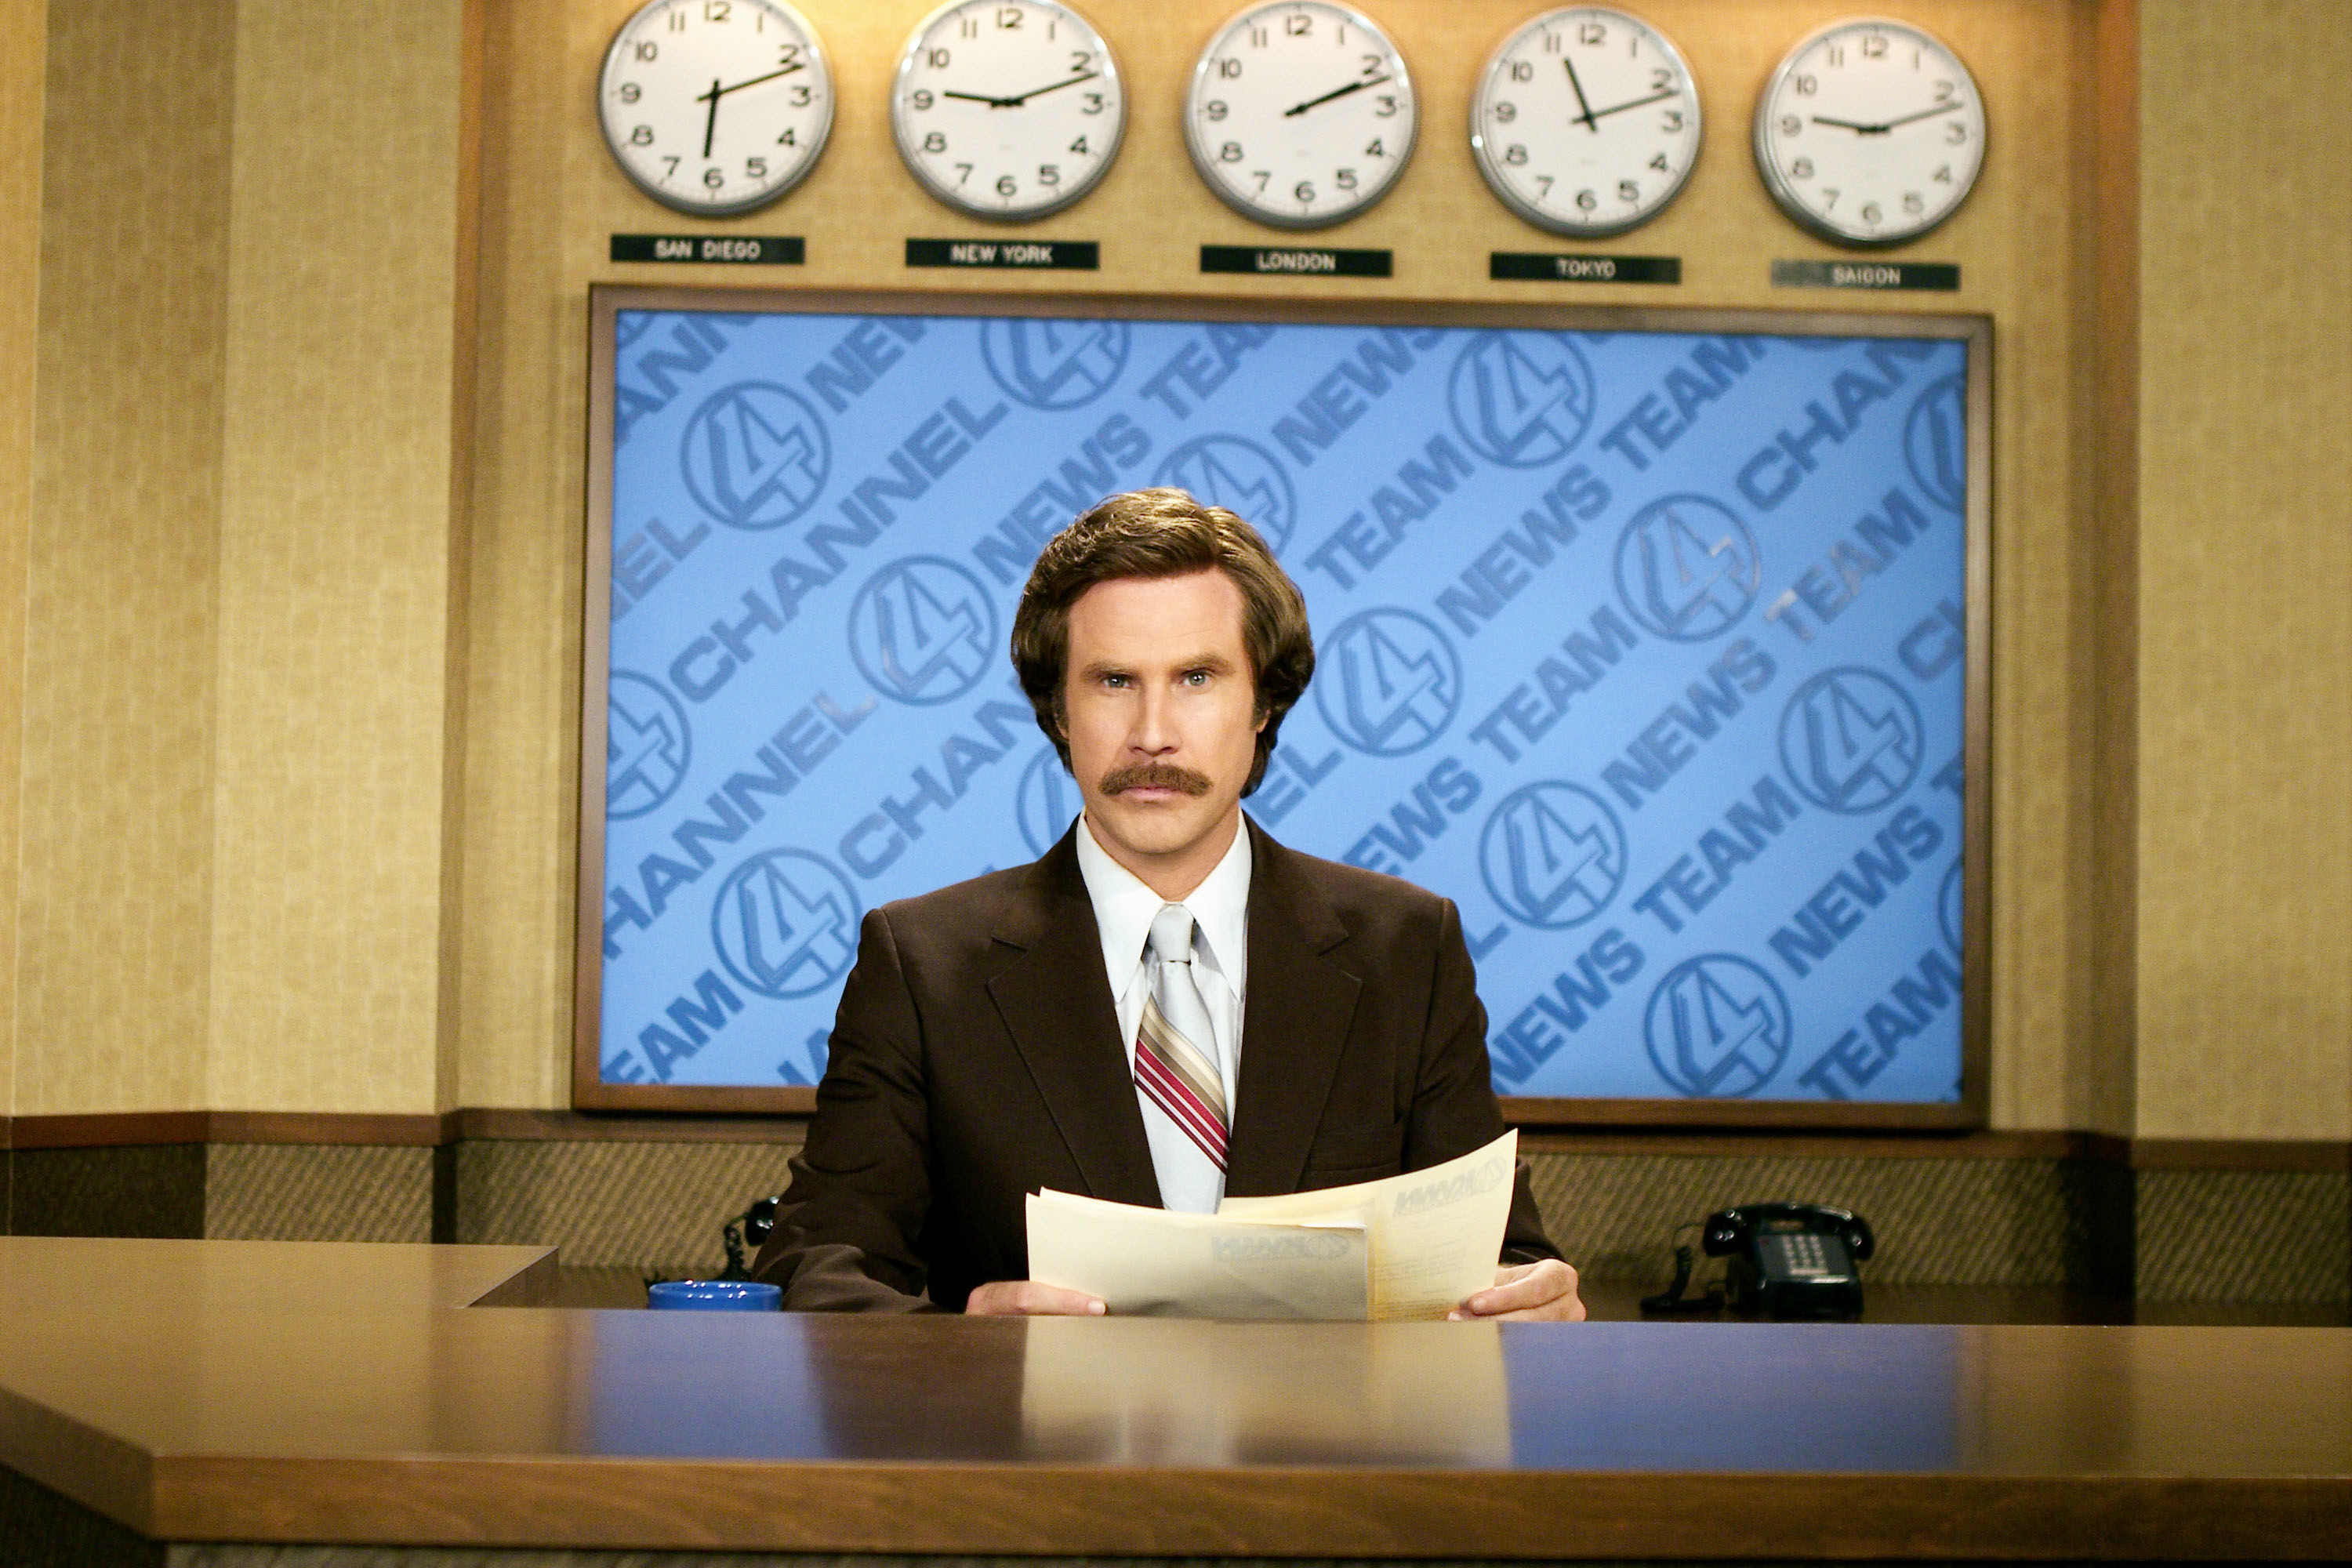 Will Ferrell sits with papers behind a news desk